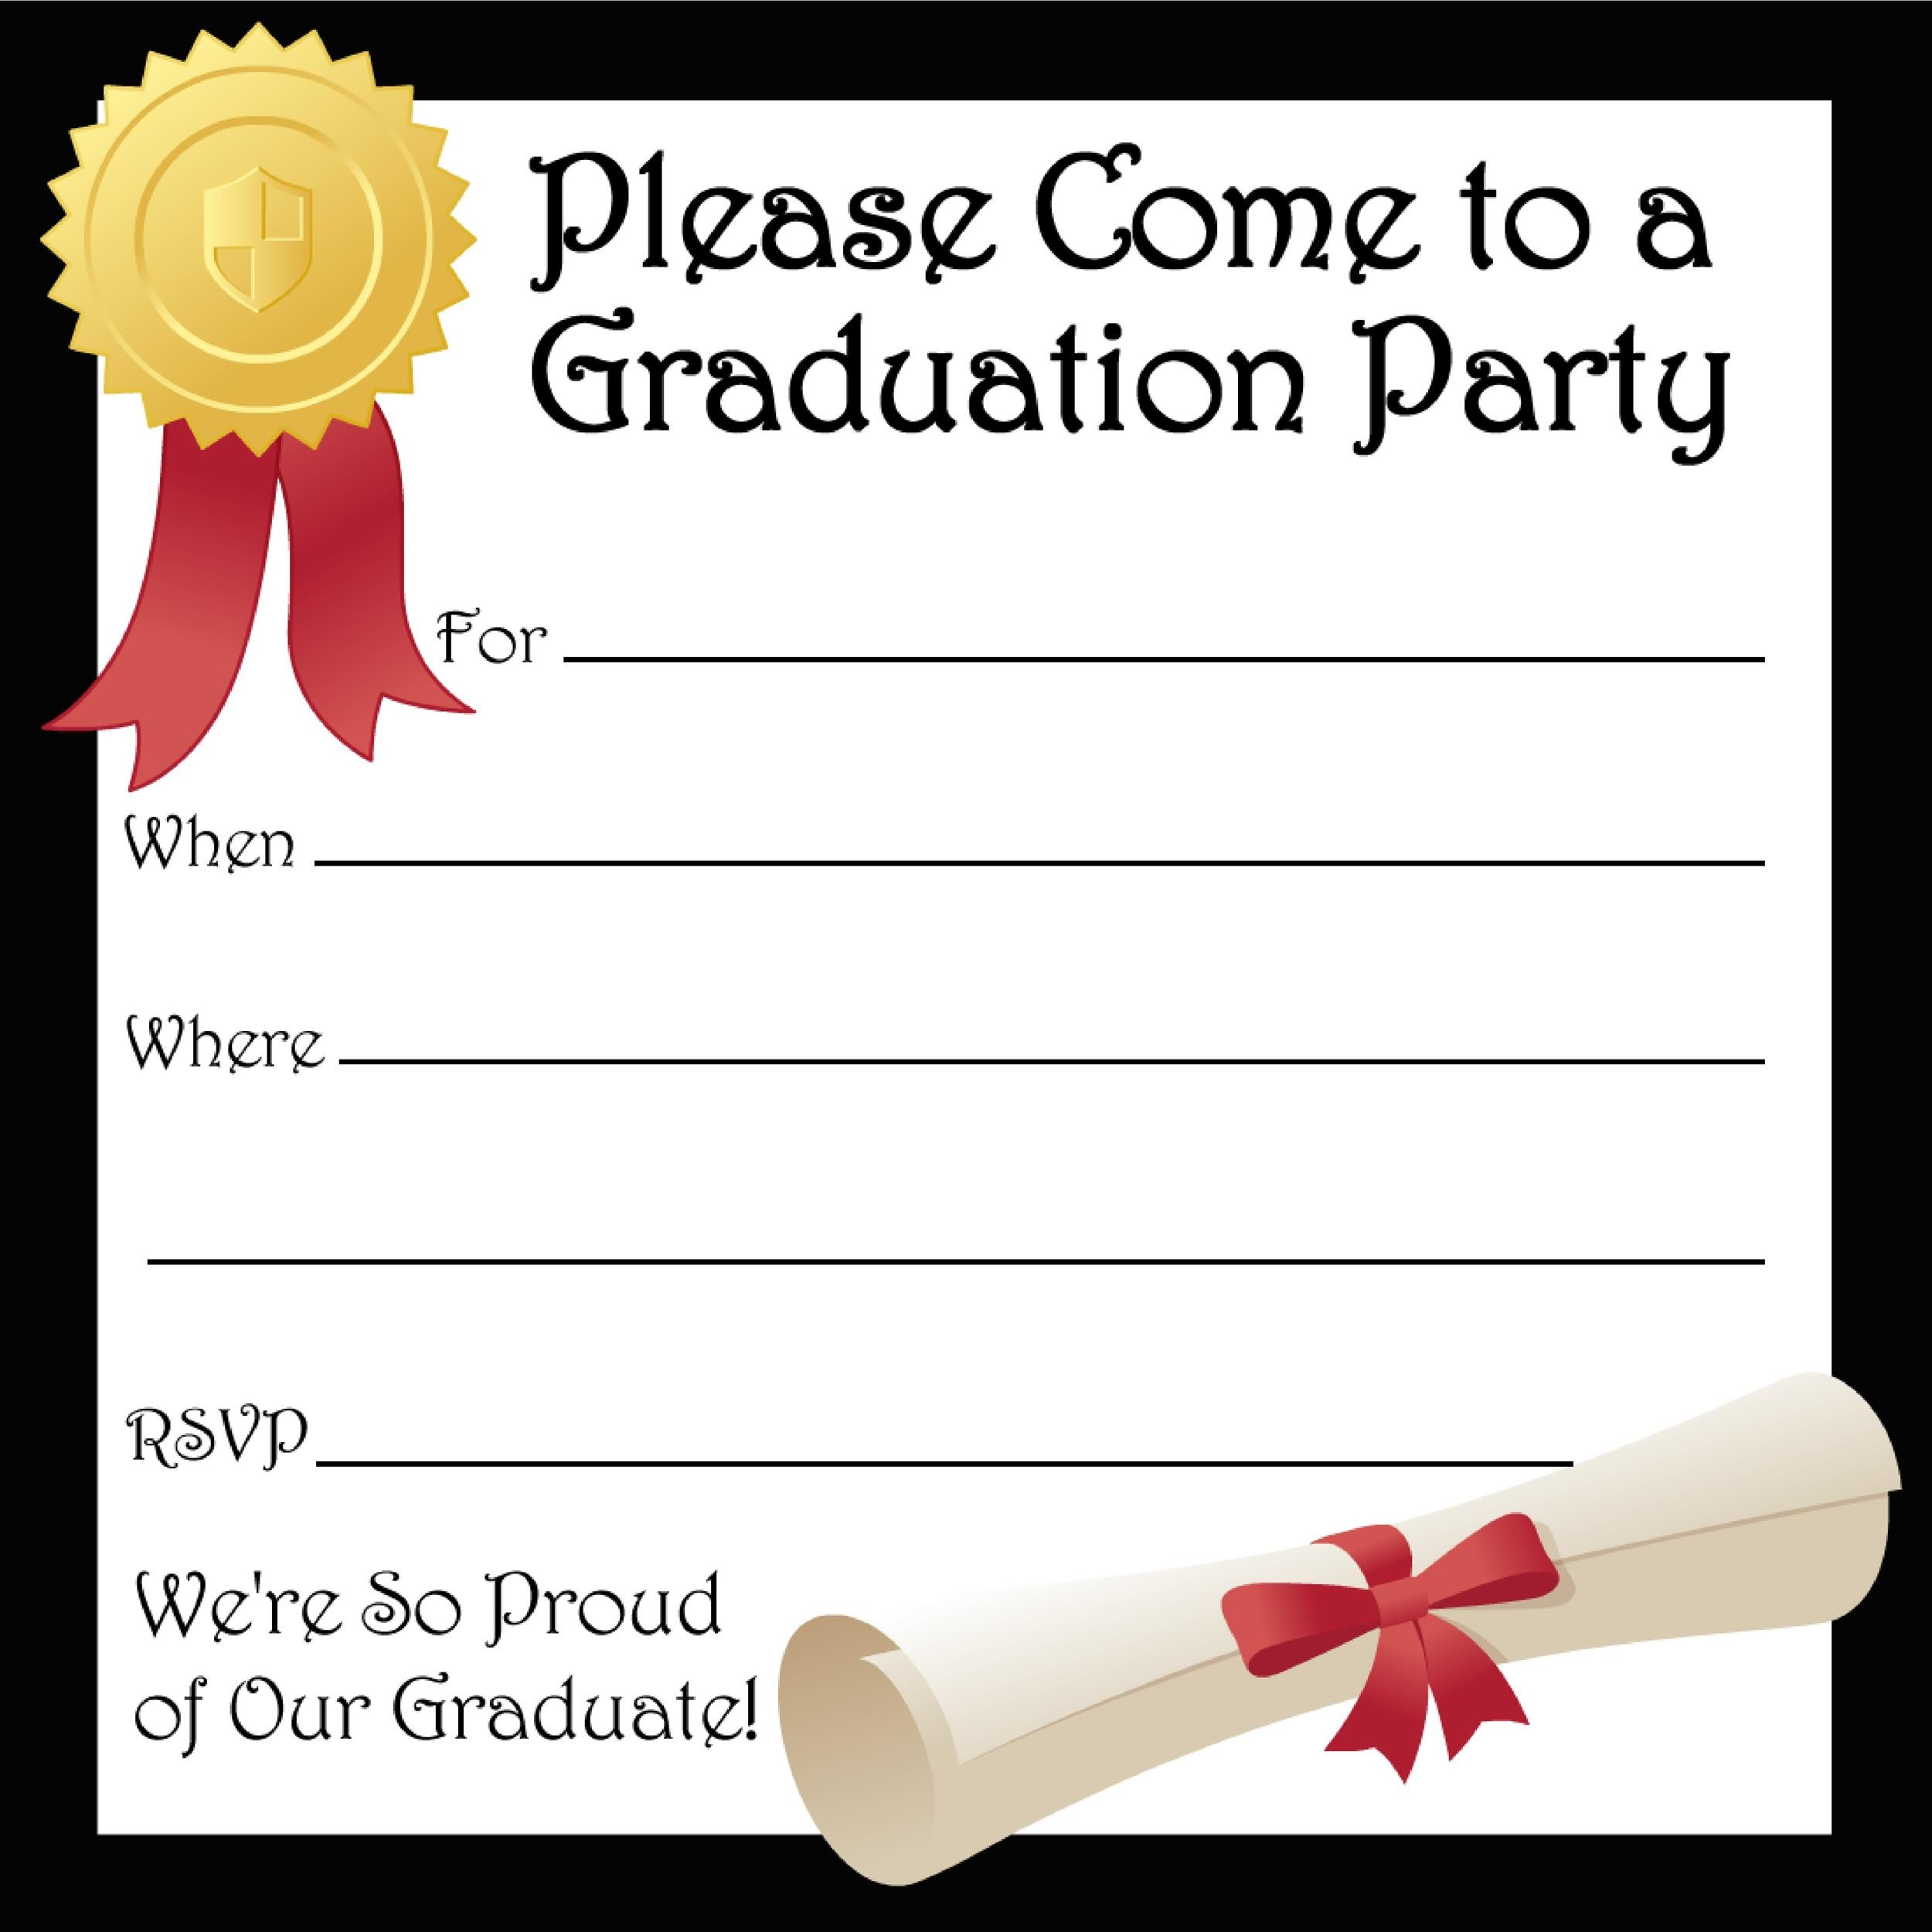 40 free graduation invitation templates template lab free graduation invitation templates 10 printable graduation invitation templates 10 filmwisefo